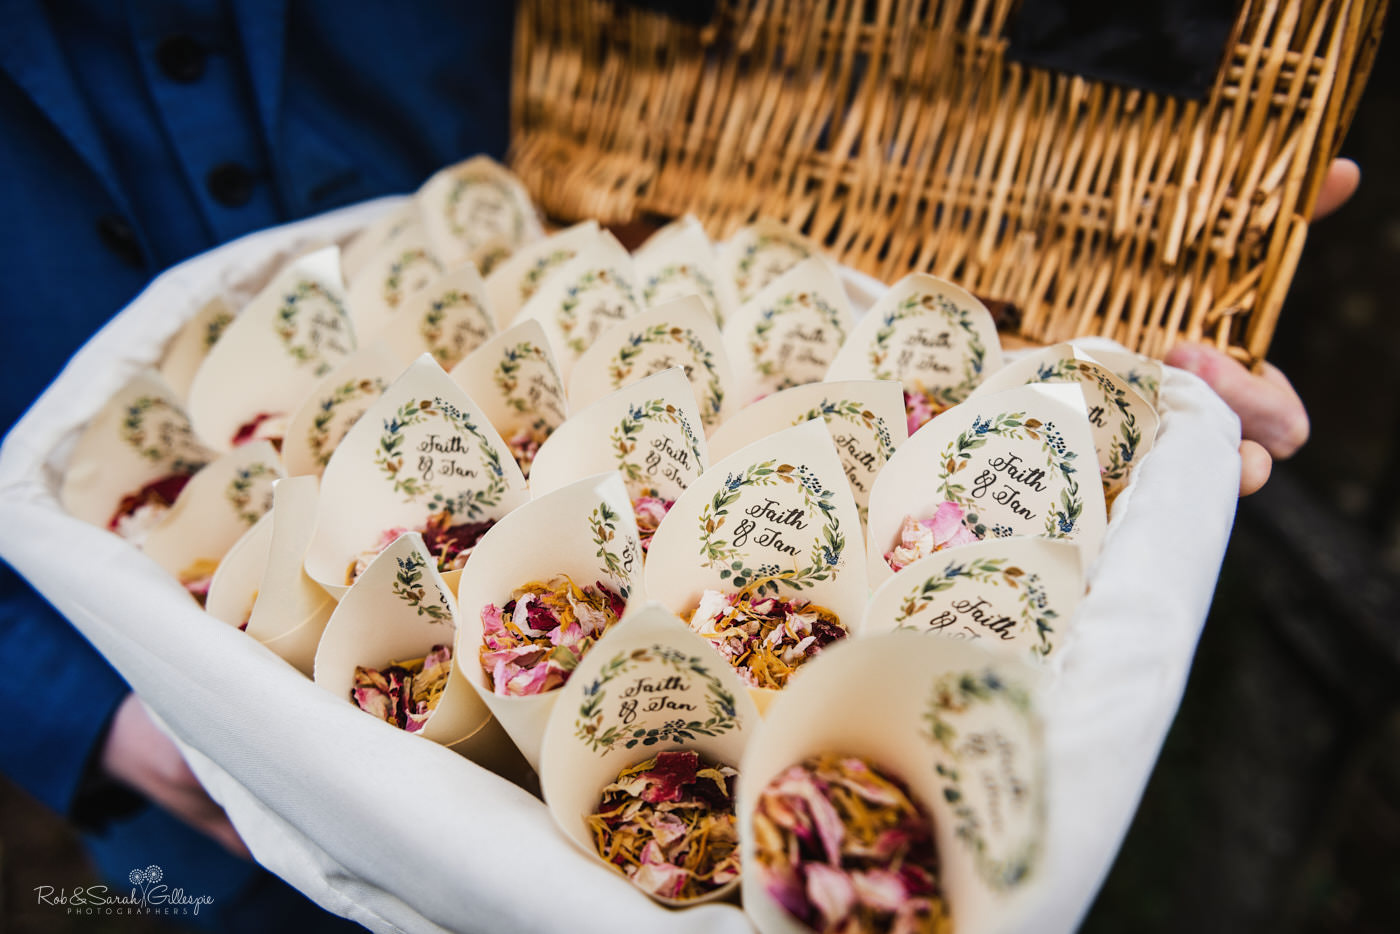 Wedding confetti at St Kenelm's church in Worcestershire